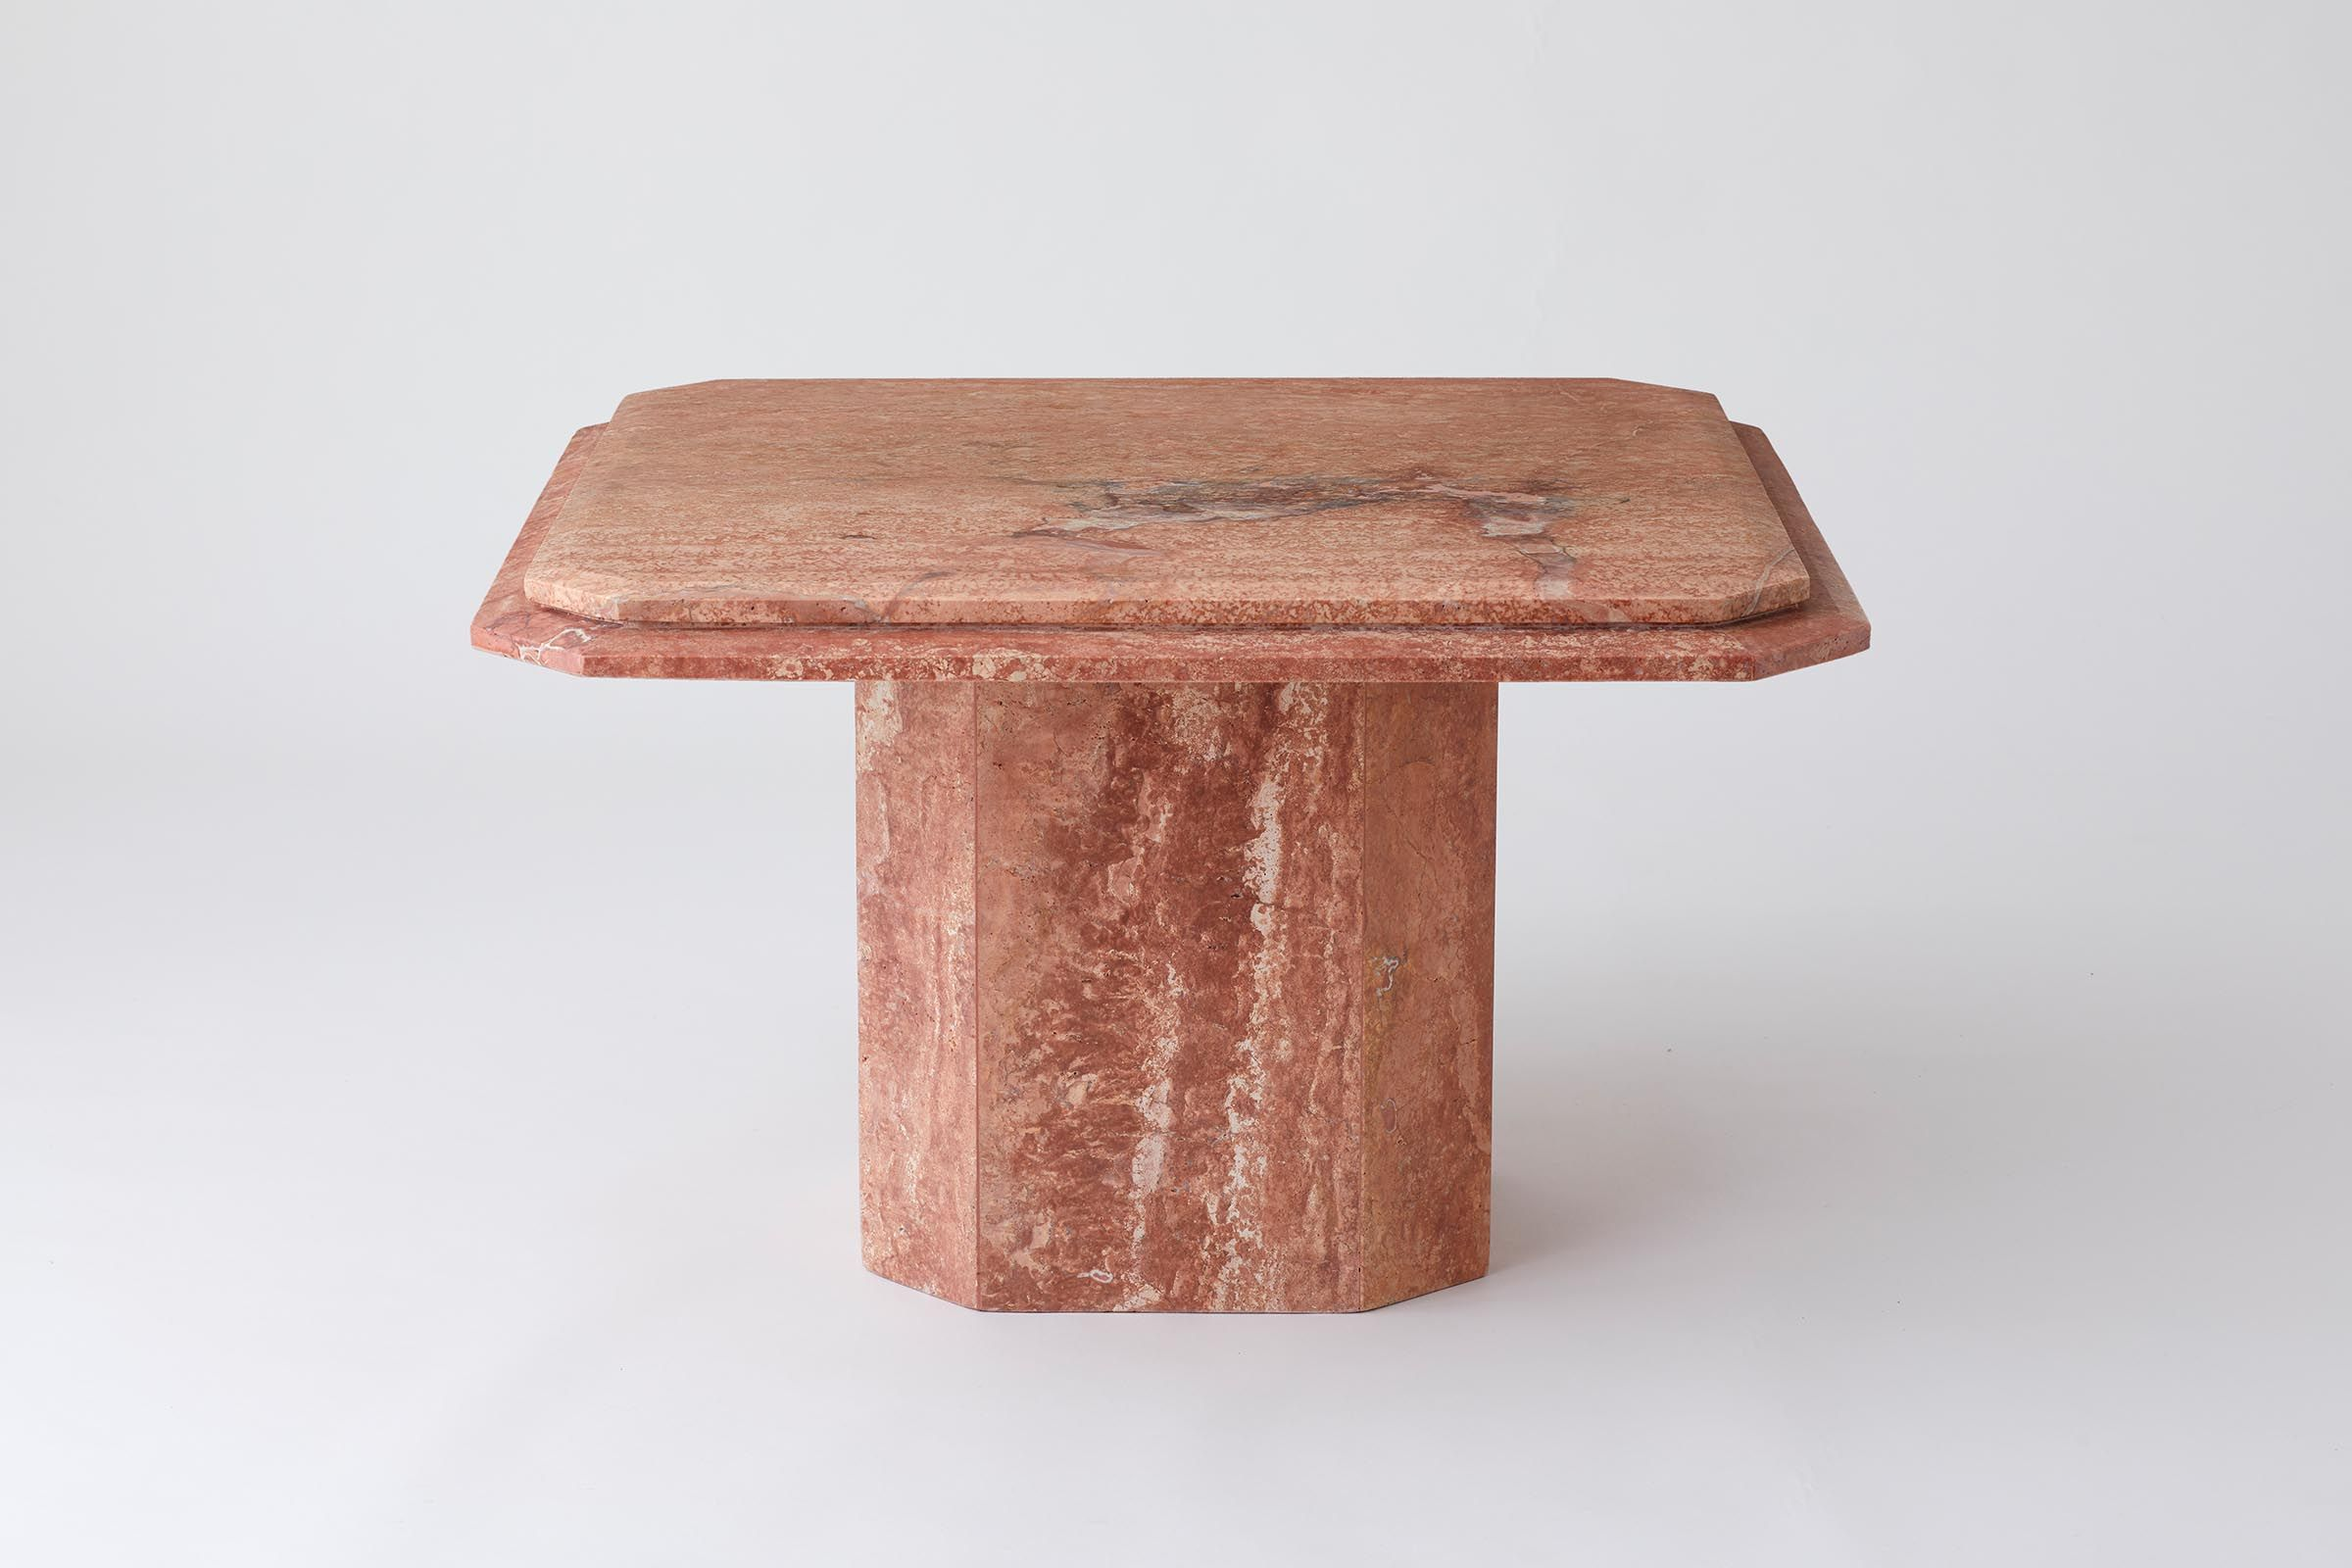 Vintage 1970 S Salmon Coloured Marble Coffee Table In 2020 Salmon Color Table Vintage Table